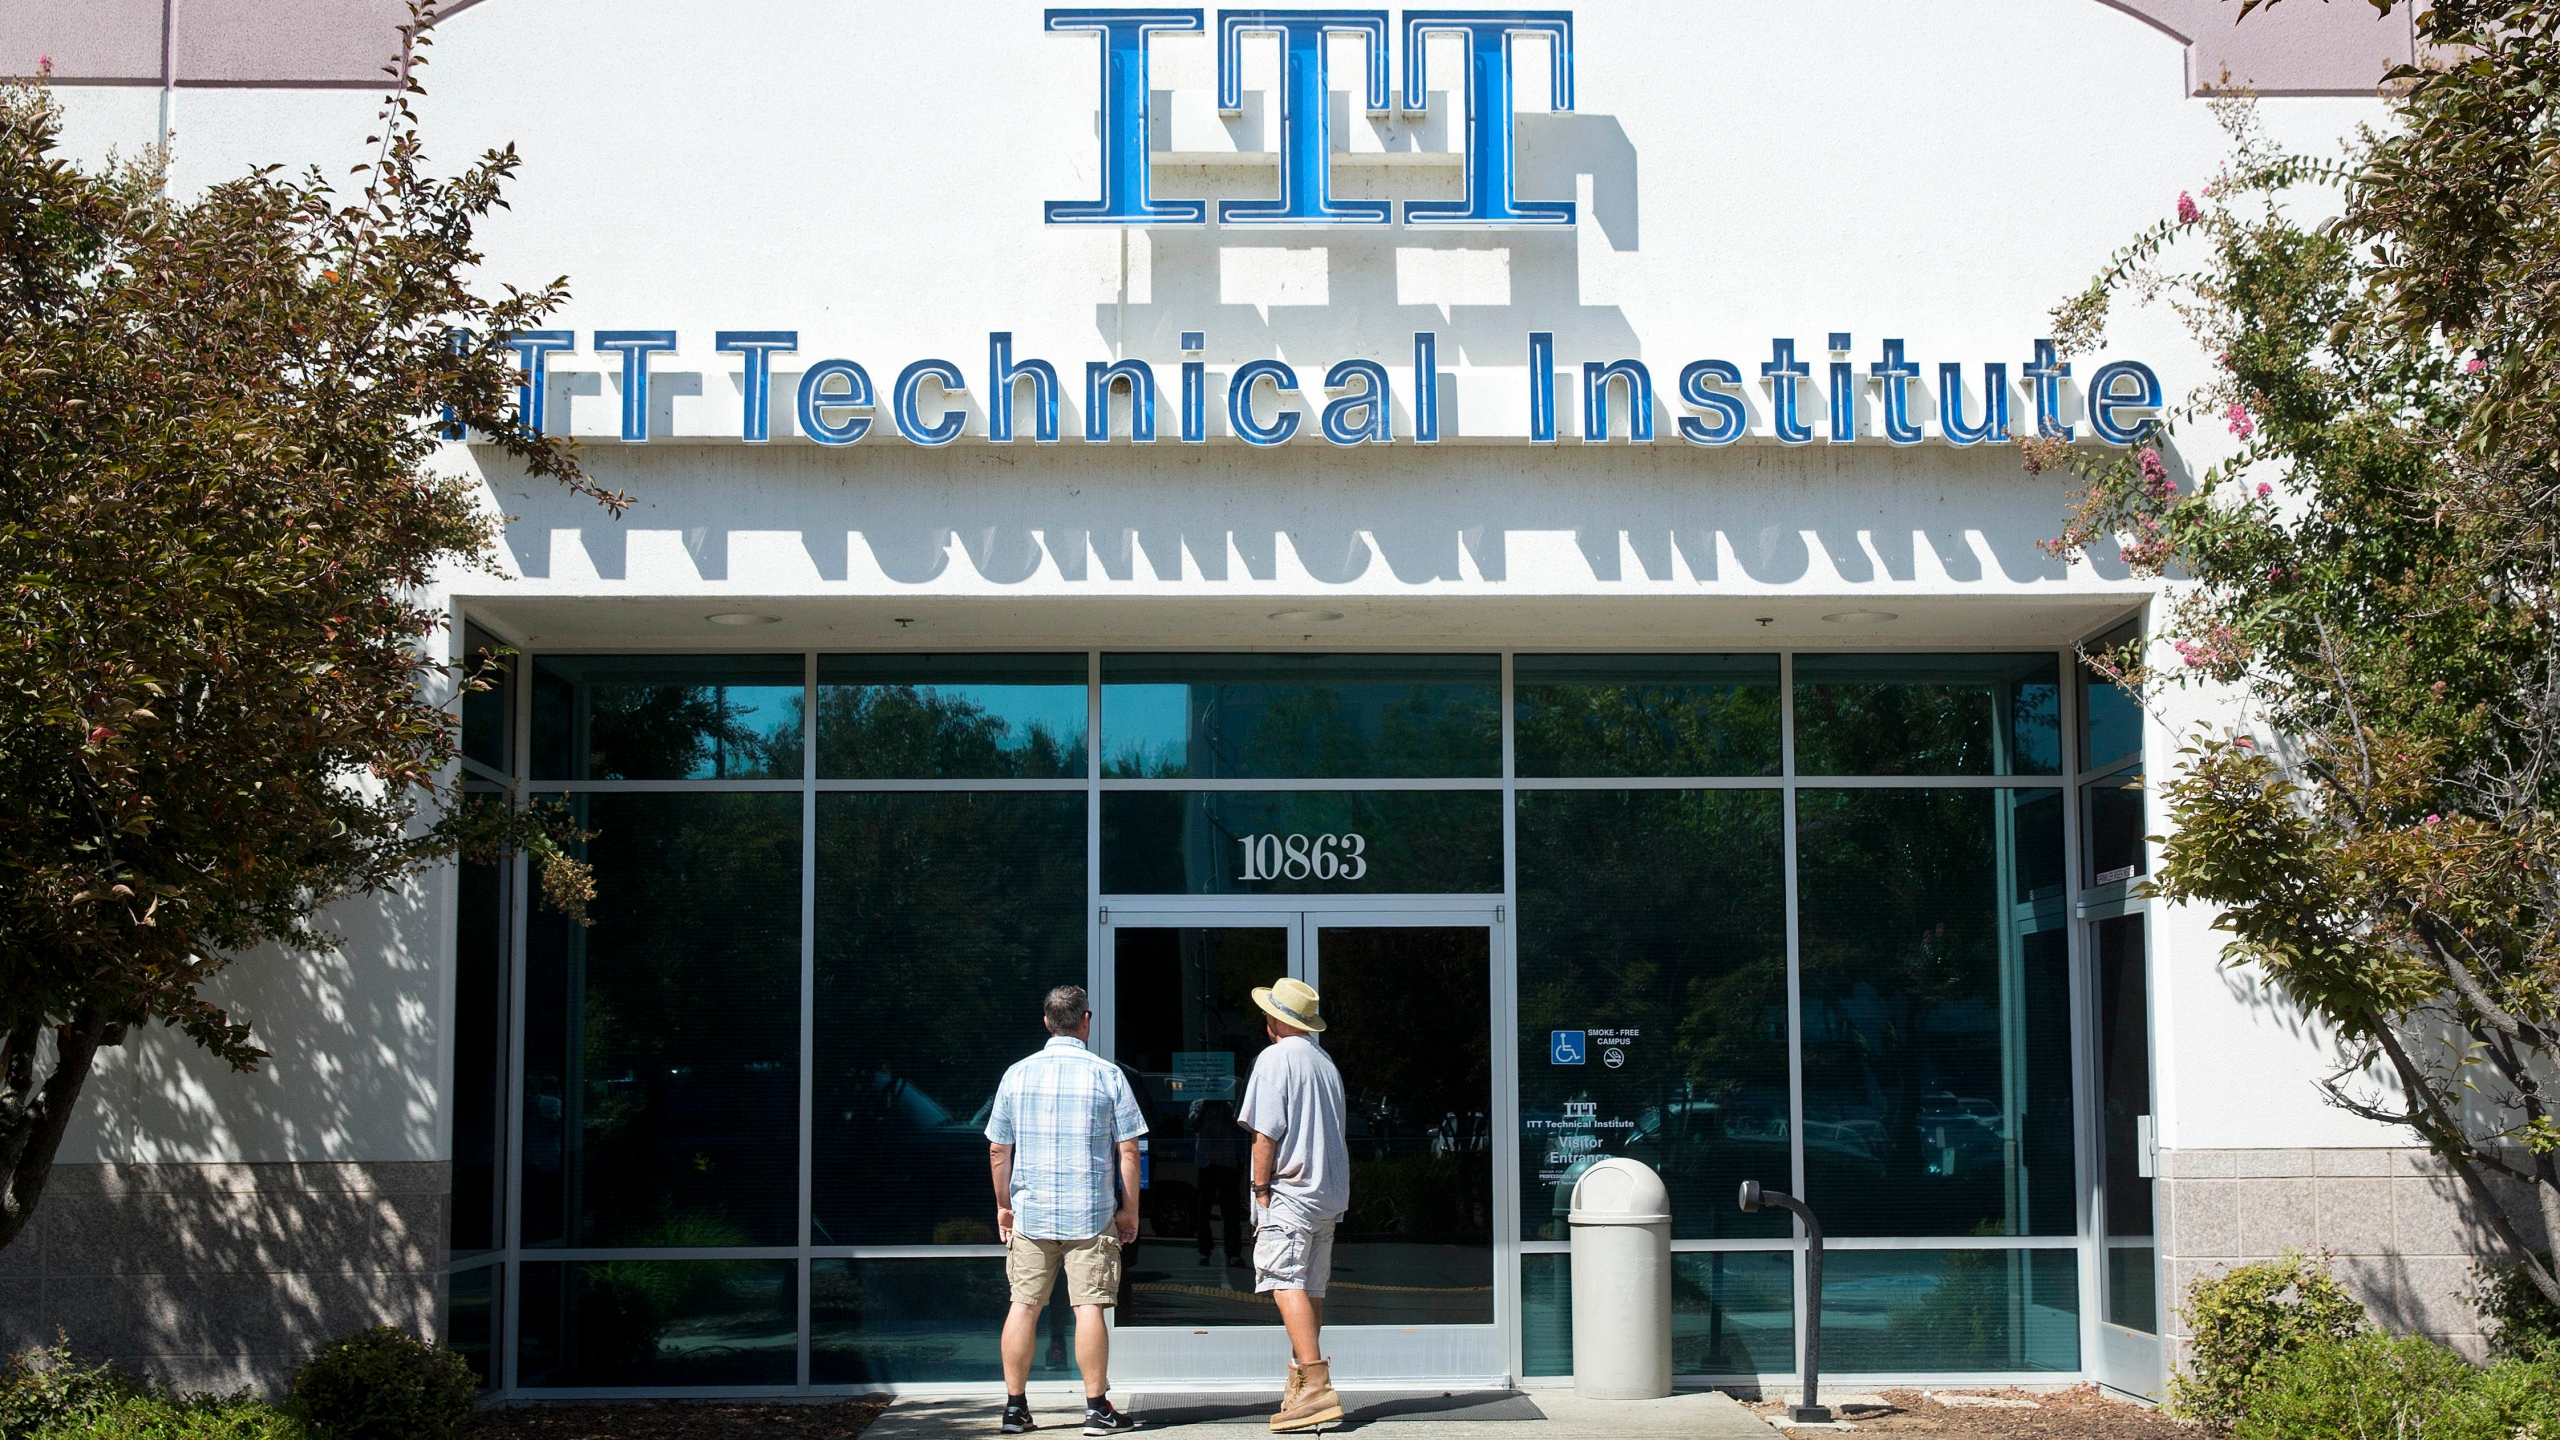 In this Sept. 6, 2016, file photo students find the doors locked to the ITT Technical Institute campus in Rancho Cordova, Calif. The U.S. Education Department announced Thursday, Aug. 26, 2021, it will forgive student debt for more than 100,000 borrowers who attended the now-defunct ITT Technical Institute chain but left before graduating. (AP Photo/Rich Pedroncelli, File)